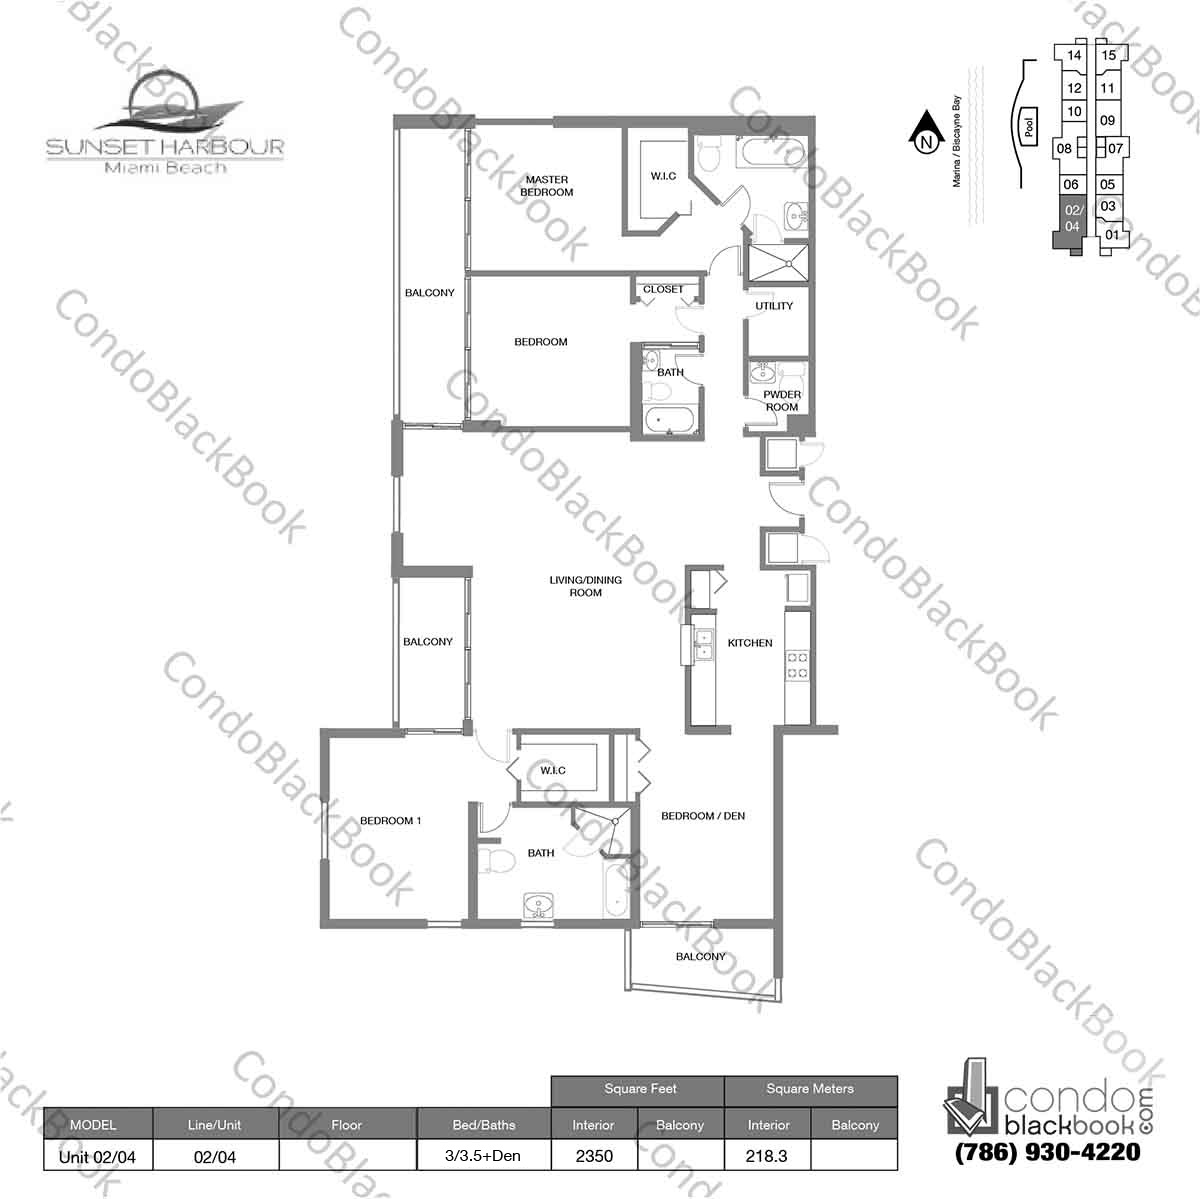 Floor plan for Sunset Harbour South Beach Miami Beach, model Unit 02/04, line 02/04N, 3 / 3 +Den bedrooms, 2350 sq ft